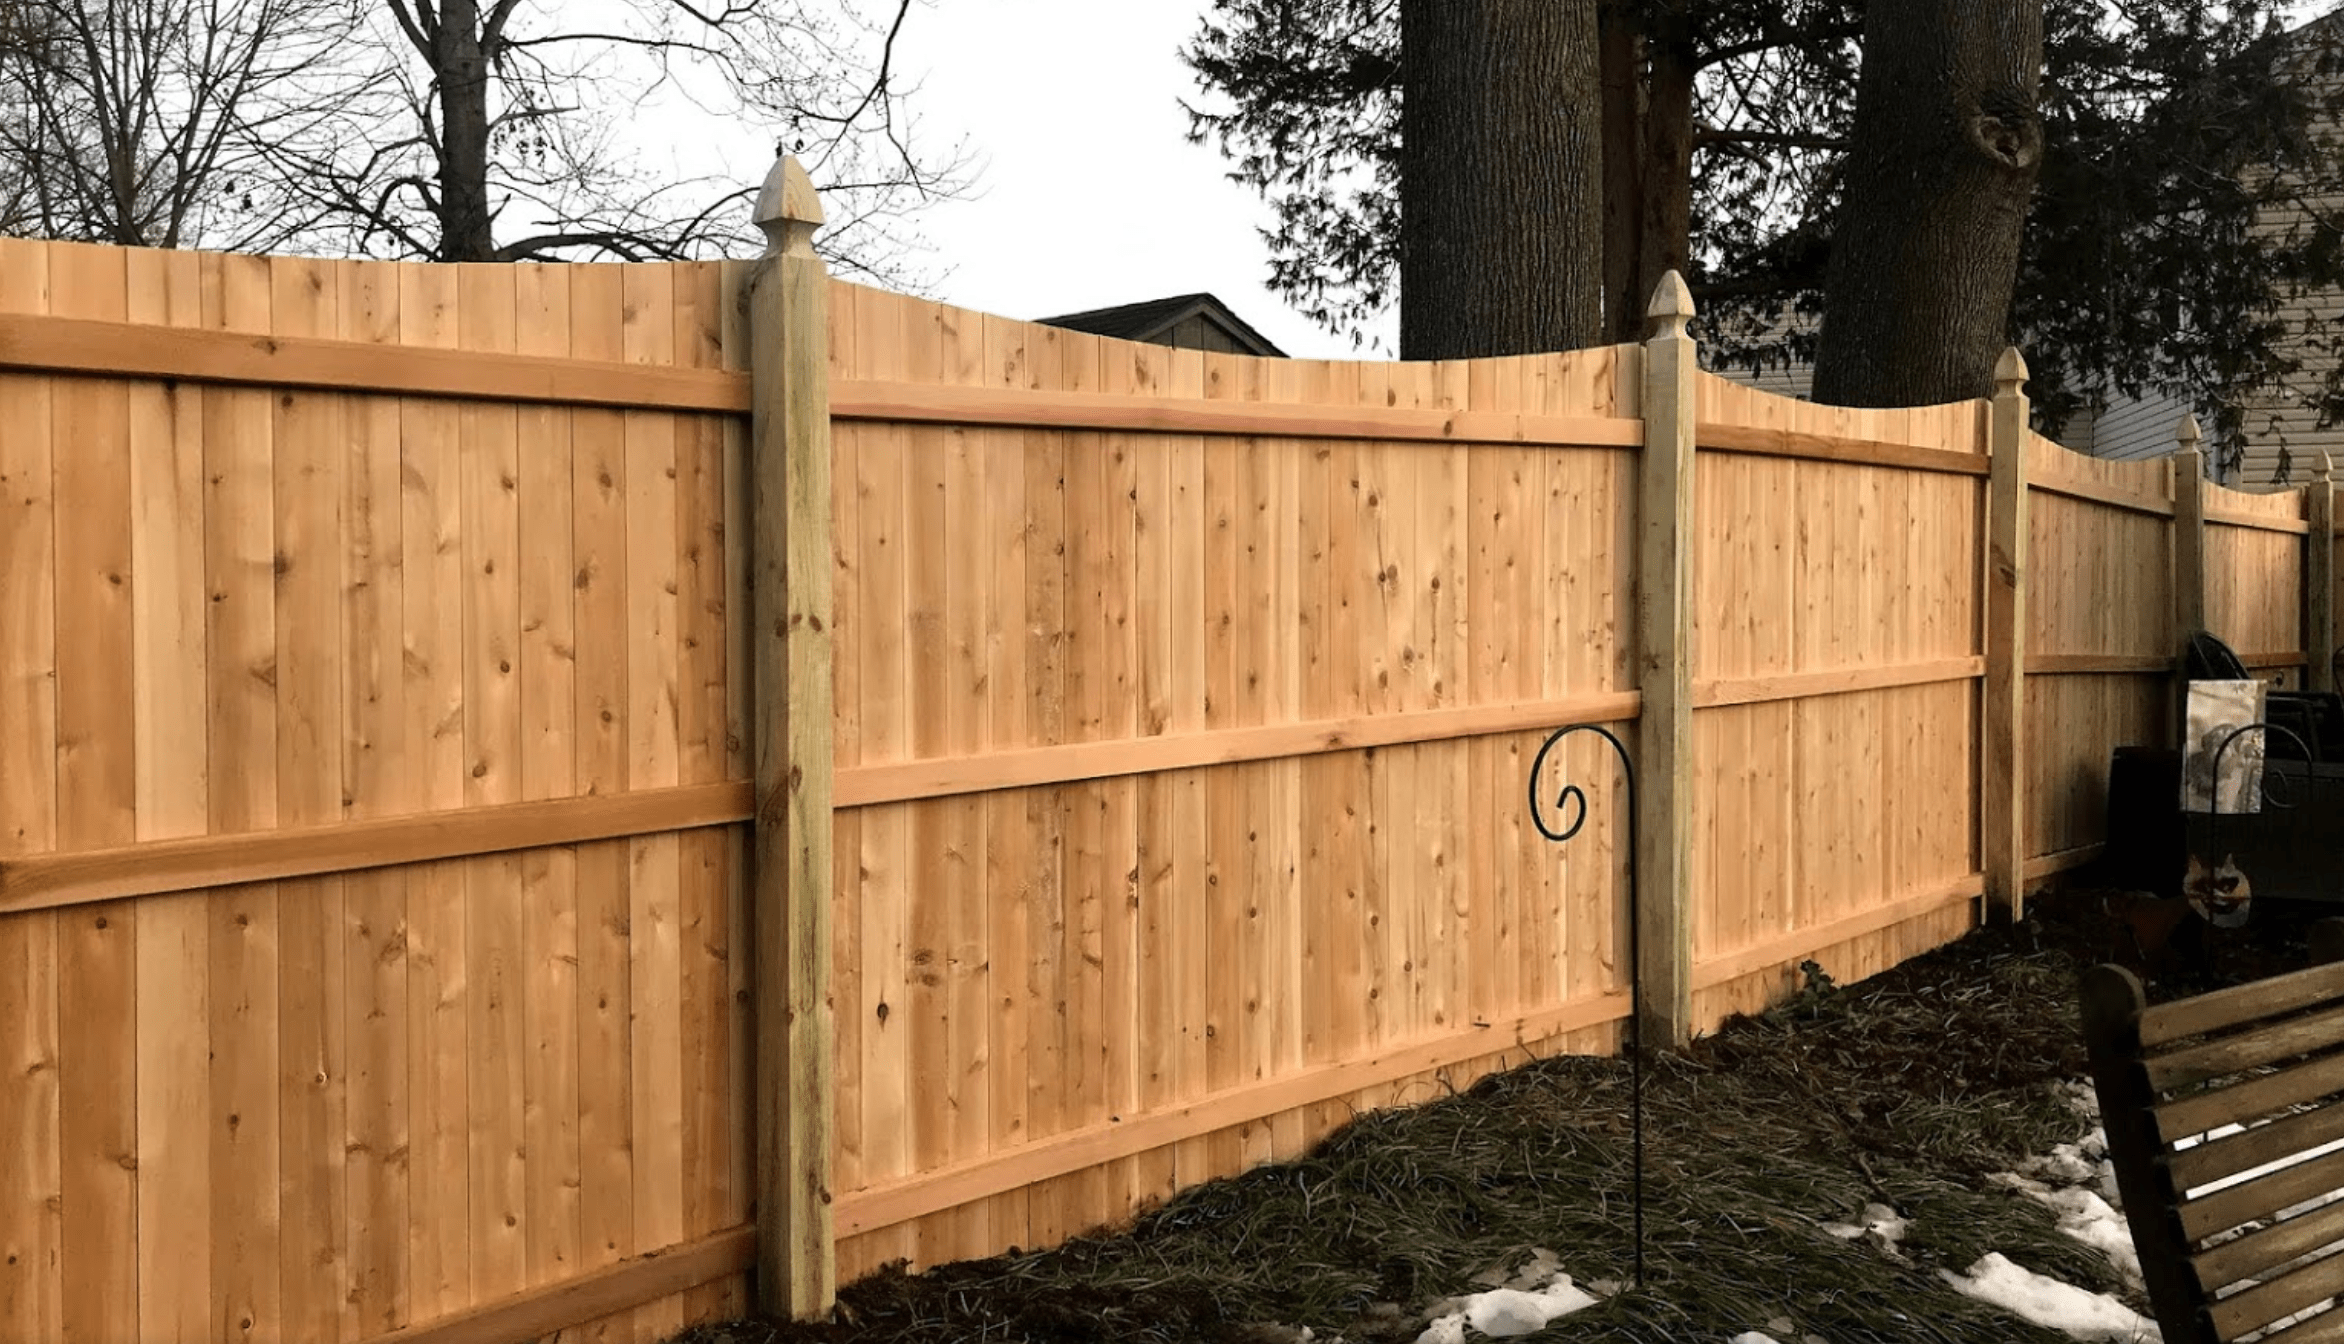 Wood fence installed on Donna Stein's property by Artistic Fence Company in December 2020